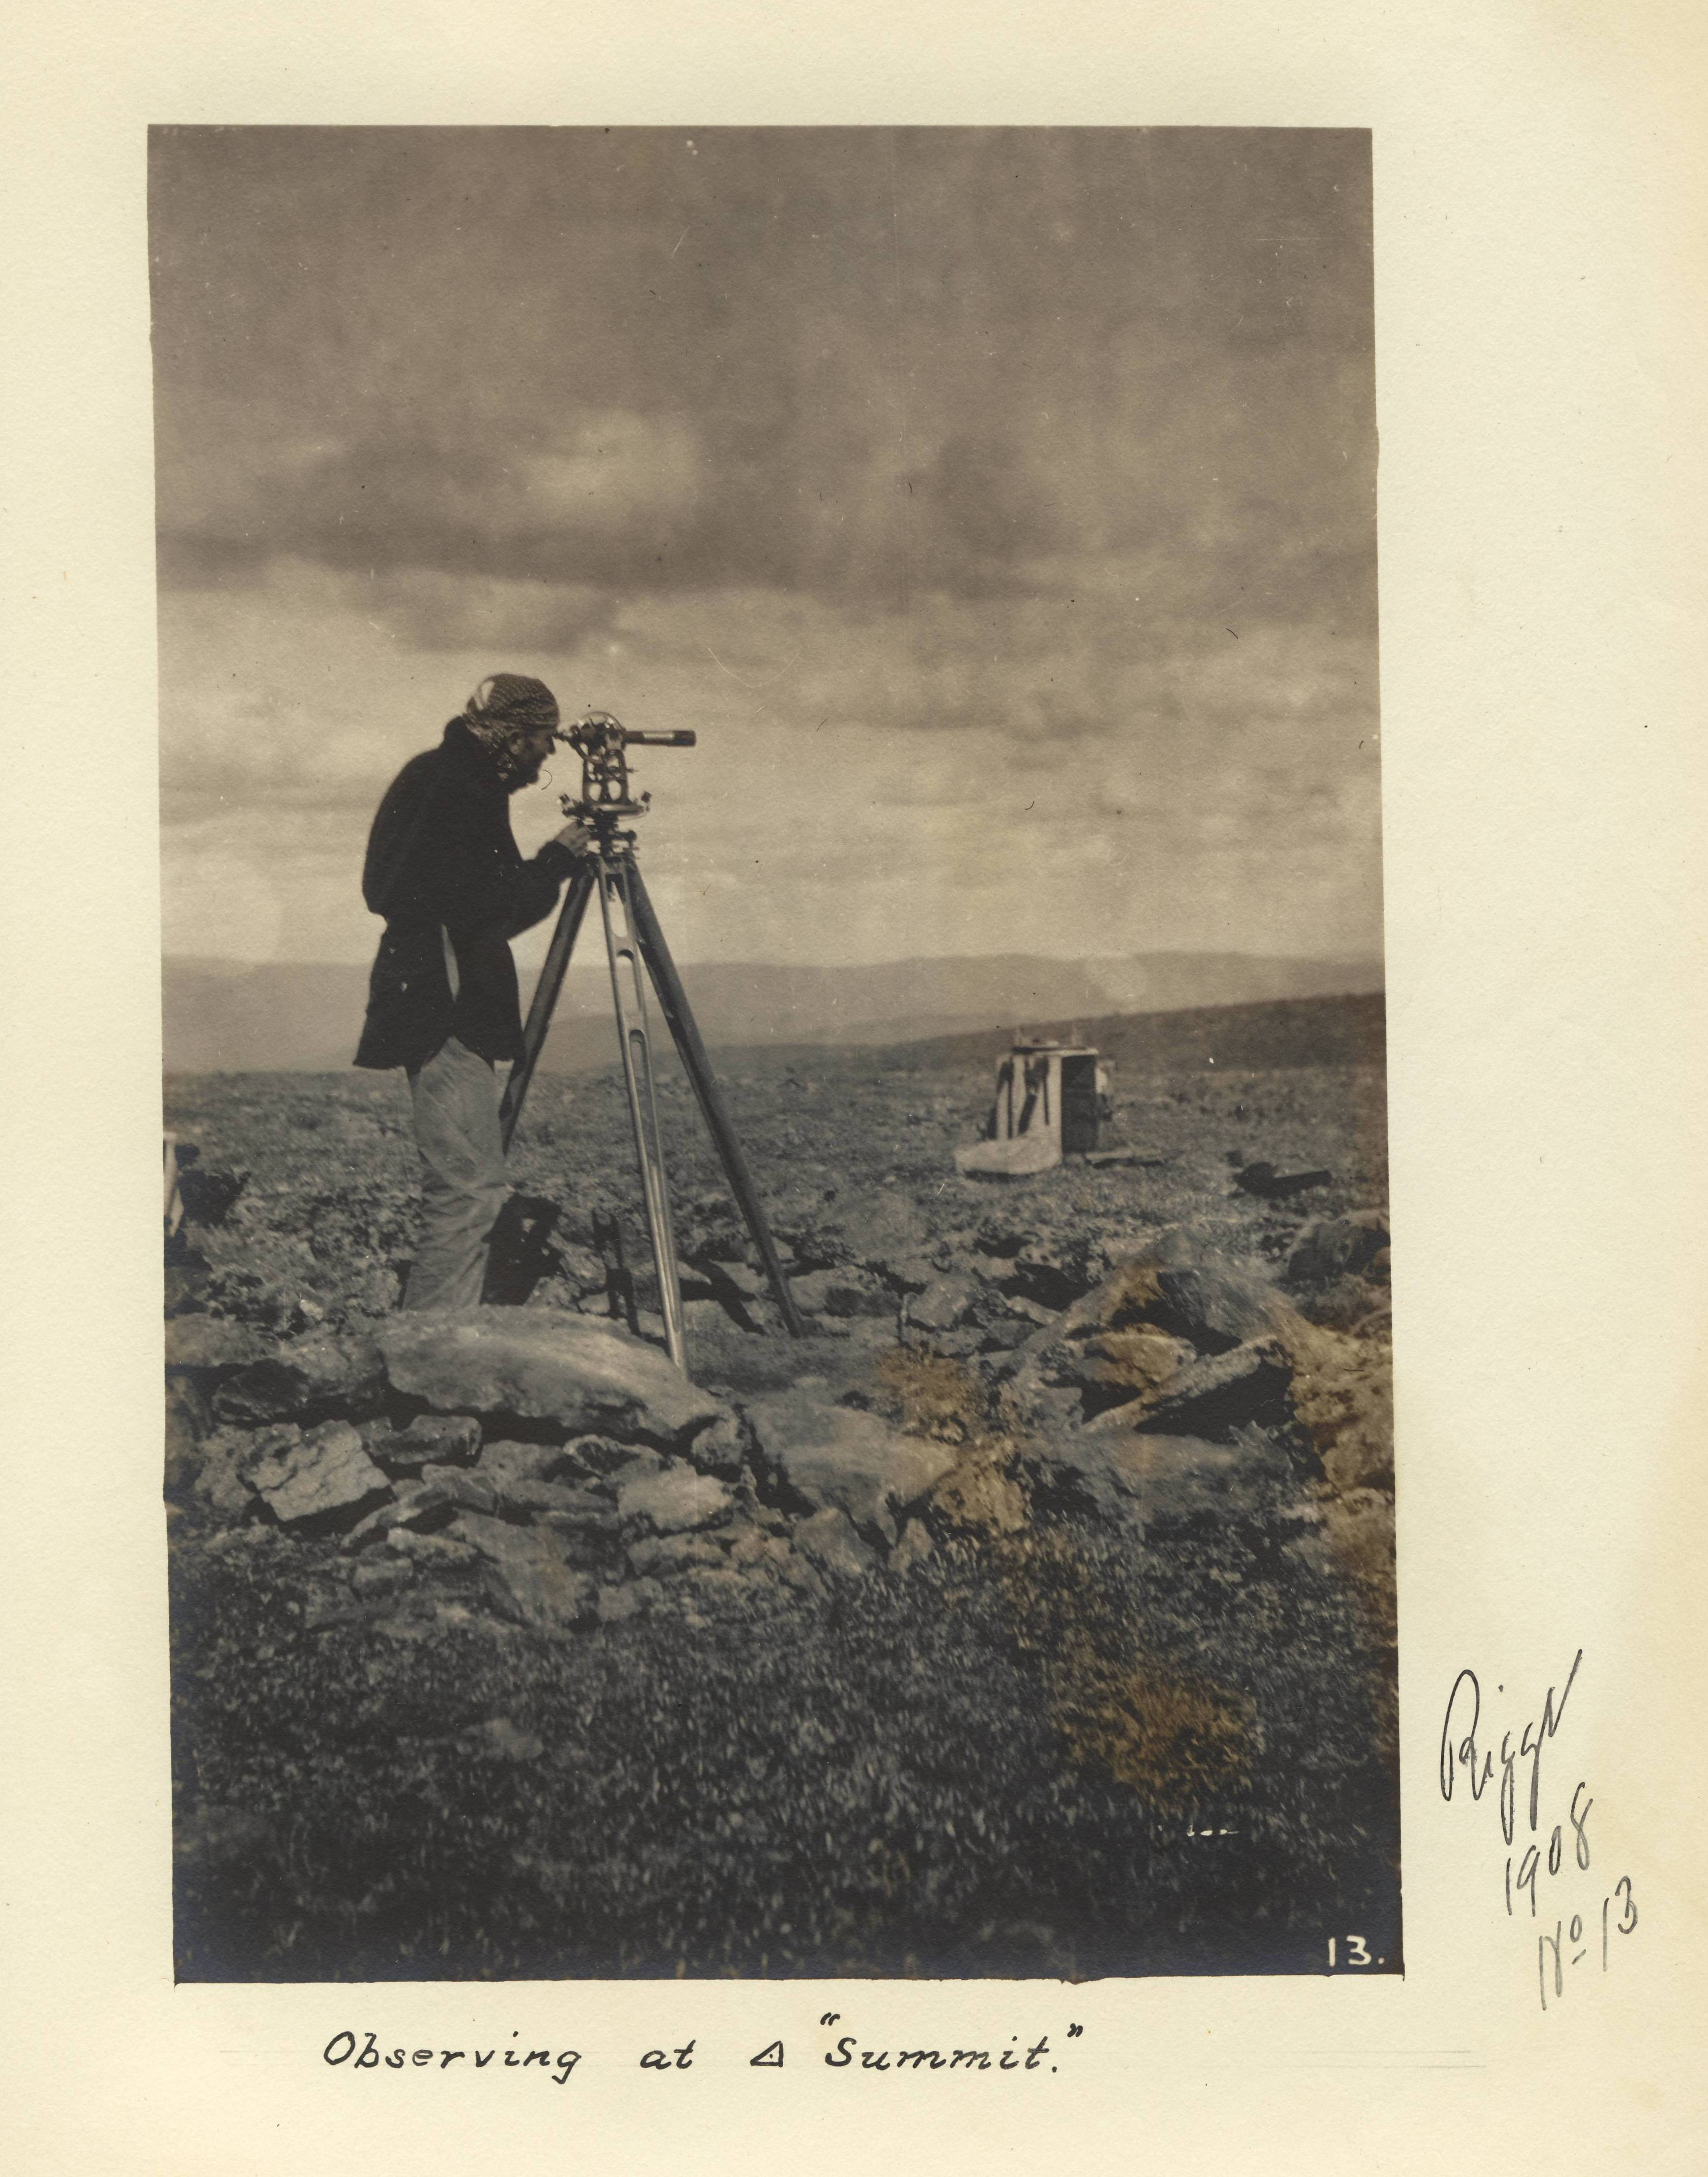 photo of a man looking through a scope on rocky terrain